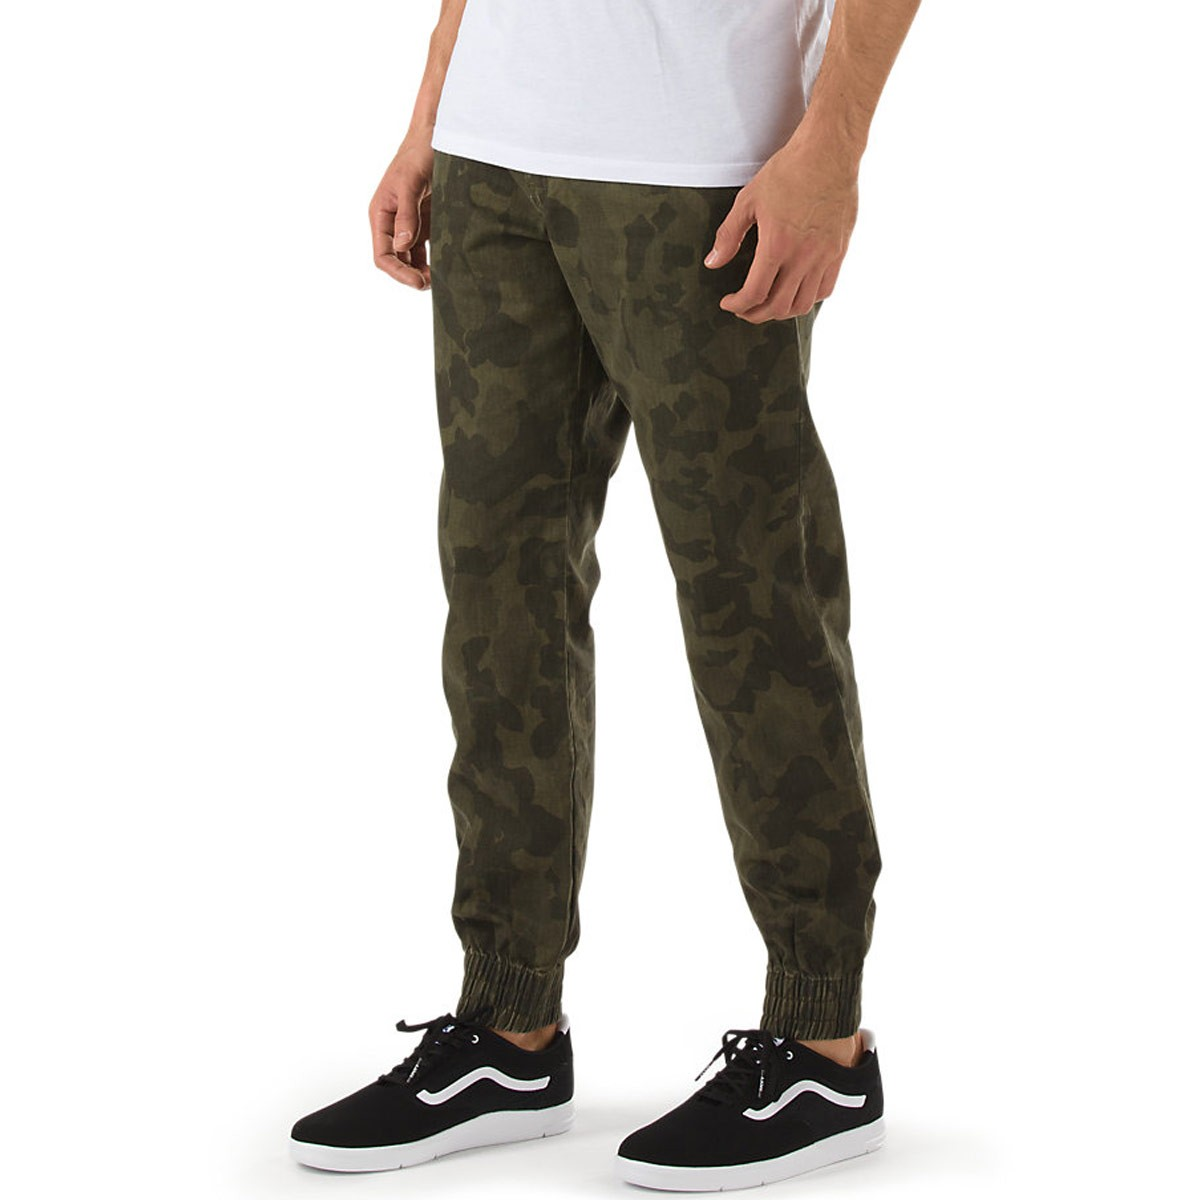 Excellent 27 Brilliant Jogger Pants For Women With Vans U2013 Playzoa.com